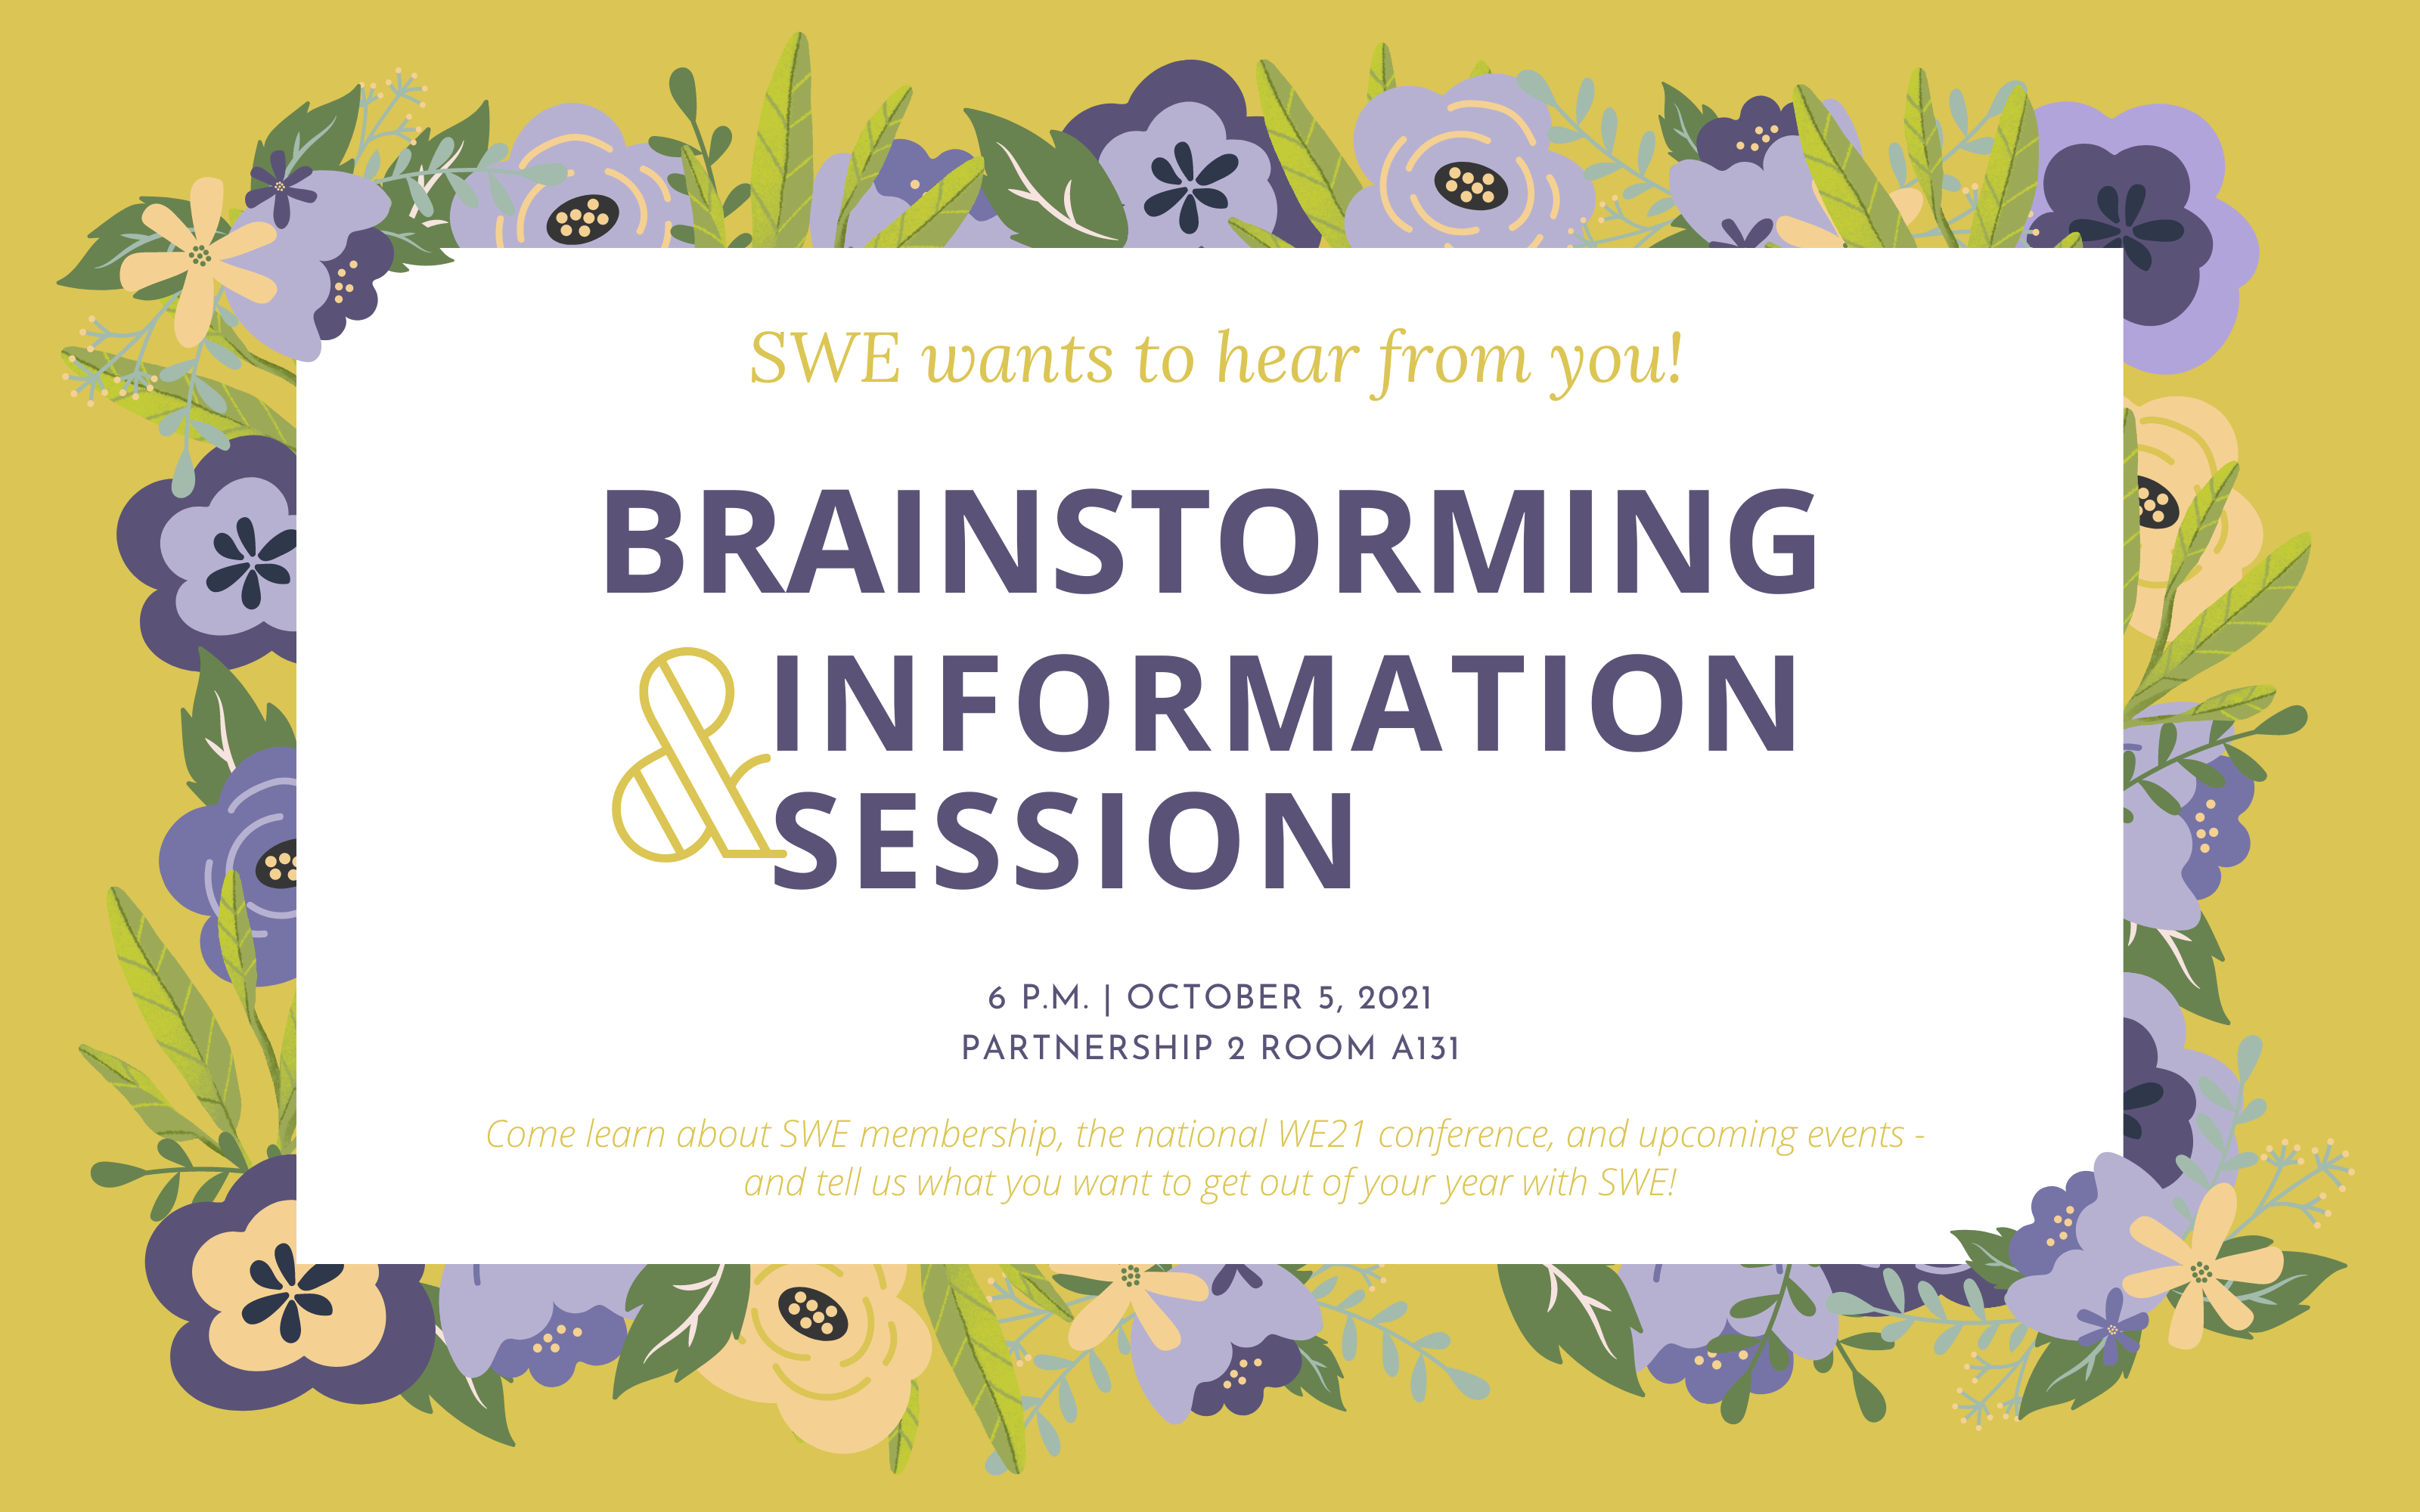 We want to hear from you! Brainstorming and Information Session, 6 pm, Ocotber 5, 2021. Partnership 2 Room A131. Come learn about membership, the national WE21 conference, and upcoming events - and tell us what you want to get out of your year with SWE!